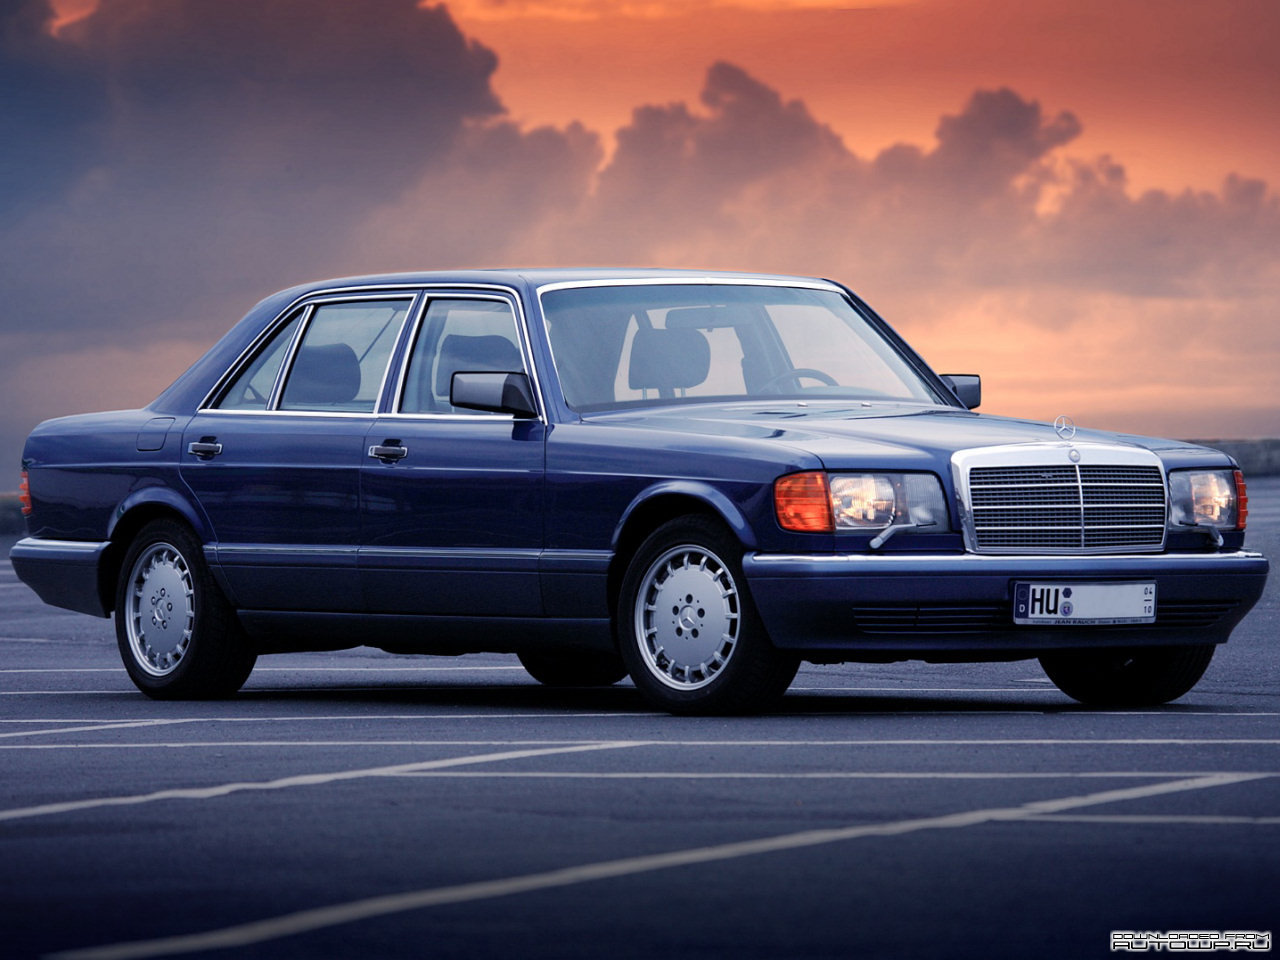 The w126 sel longbody history picture thread page 2 for Mercedes benz forum s class